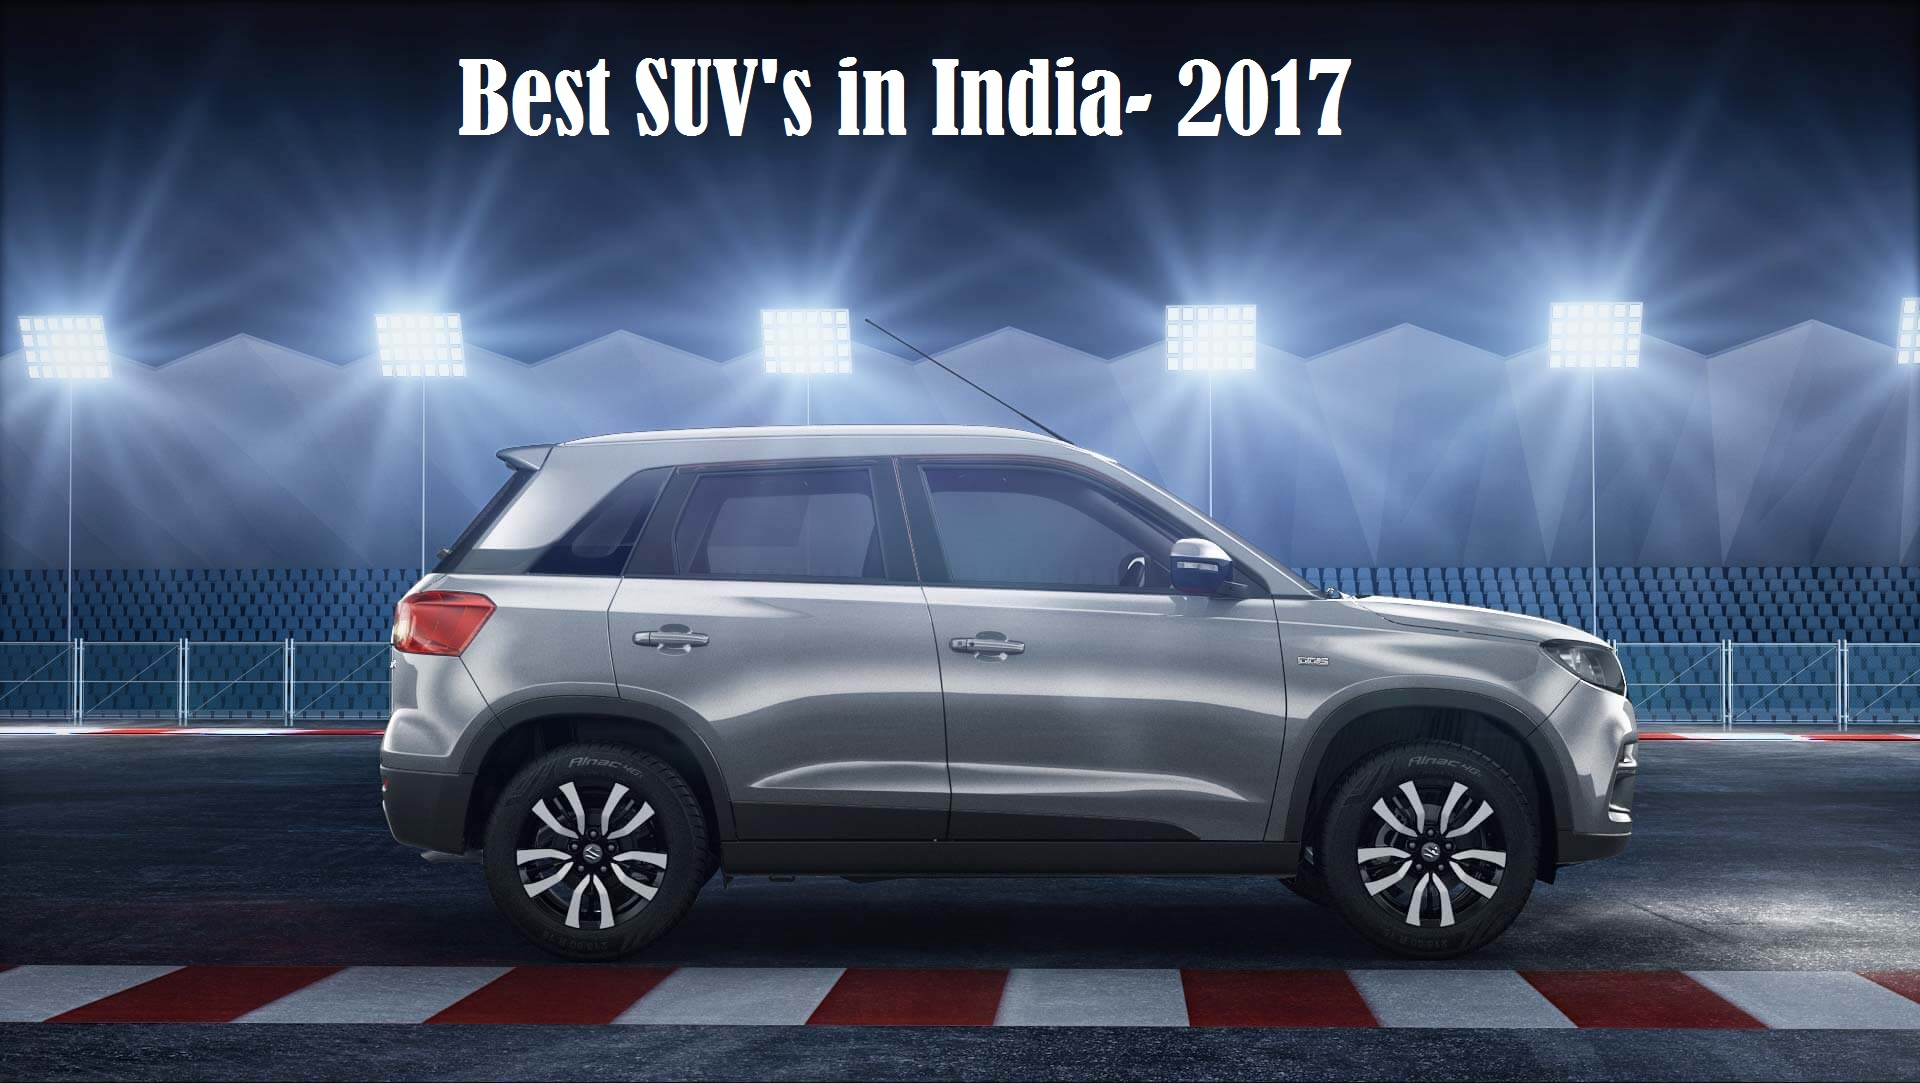 Best SUVs in India